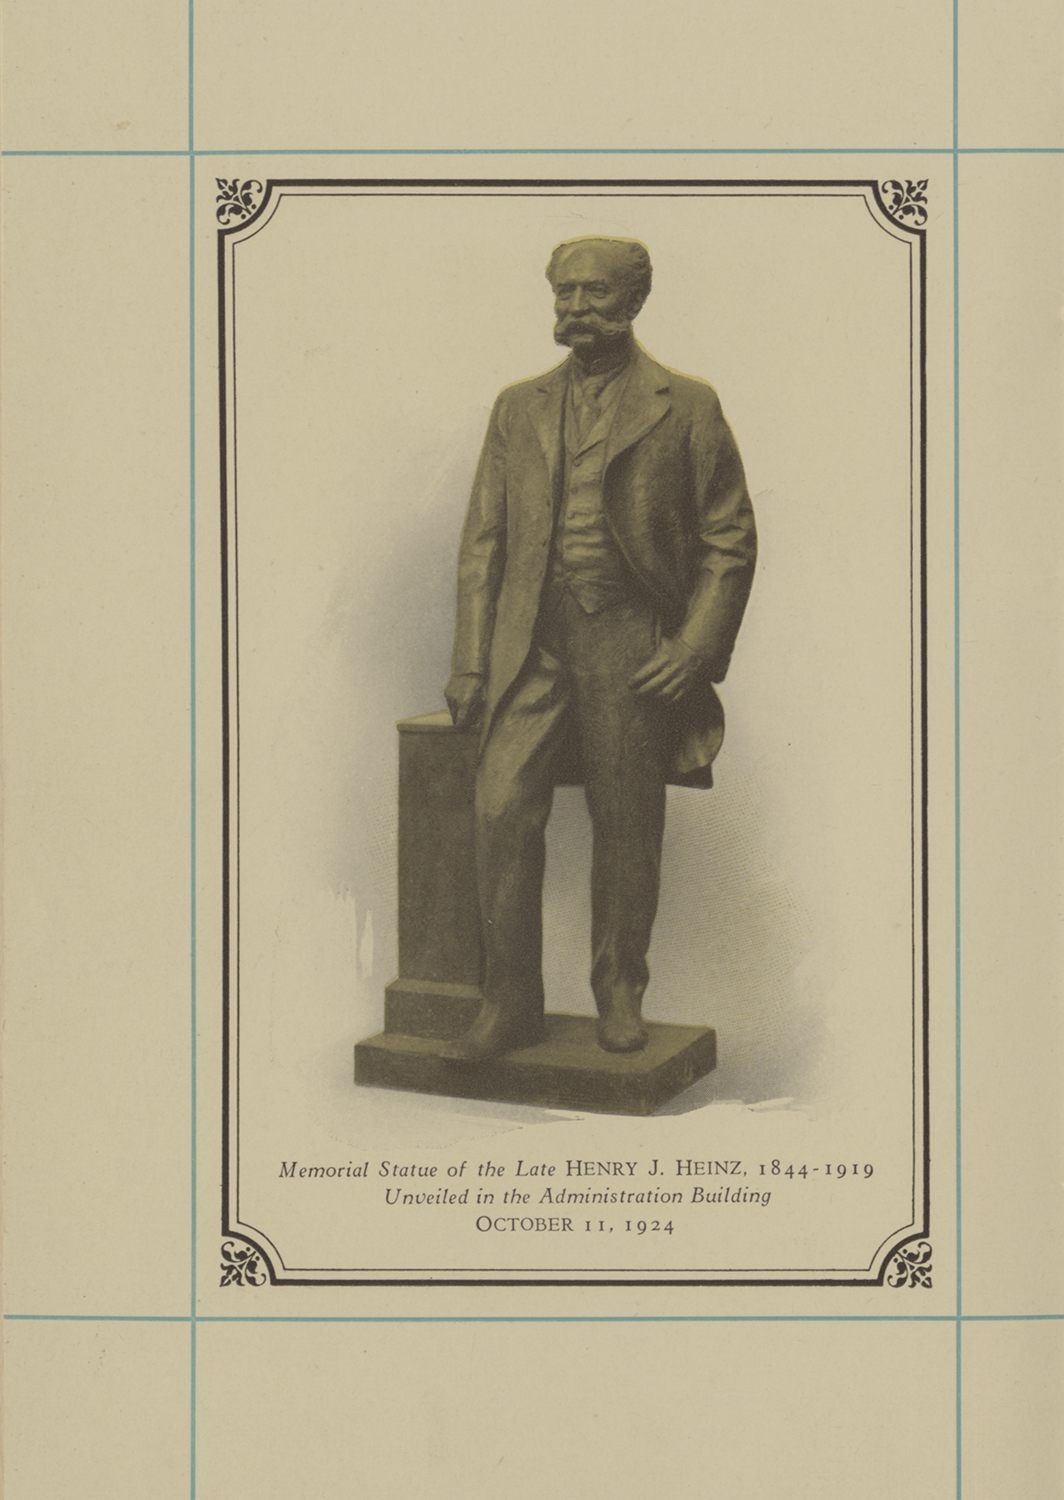 Photograph of memorial statue of Henry J. Heinz in booklet for Founder's Day banquet, October 11, 1924. Michael A. Bennett Banquet Menu, H.J. Heinz Co. 1924. 1994.023, Detre Library & Archives at the Heinz History Center.